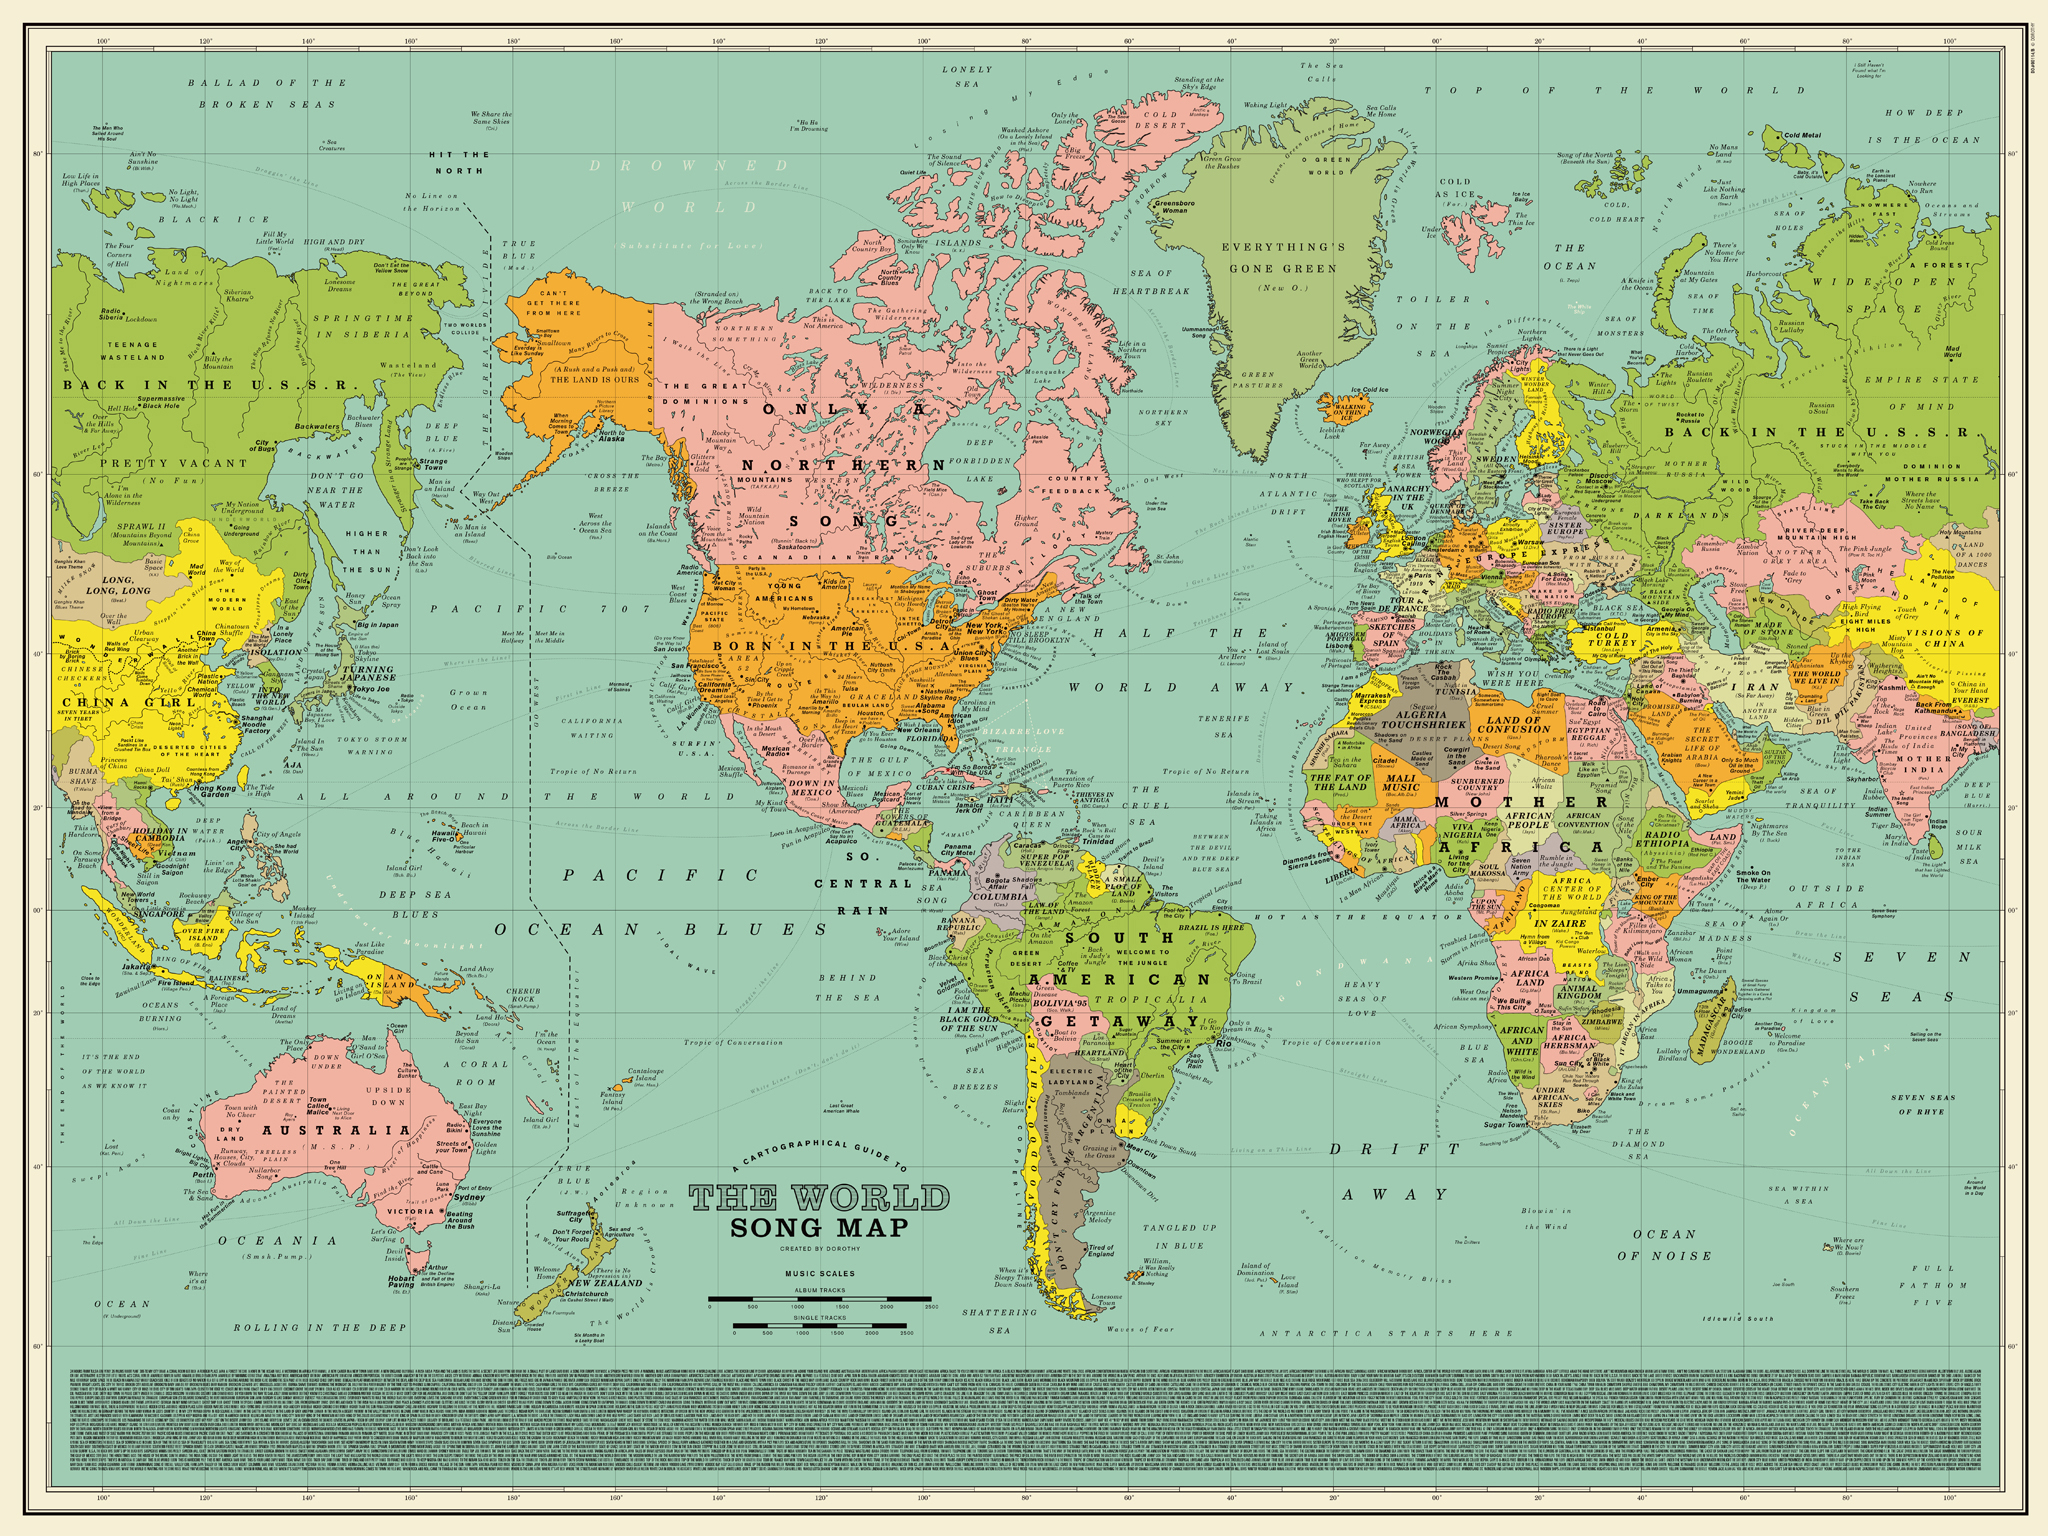 World Song Map A Detailed Poster That Imagines The World Map Made - Map of the wirld